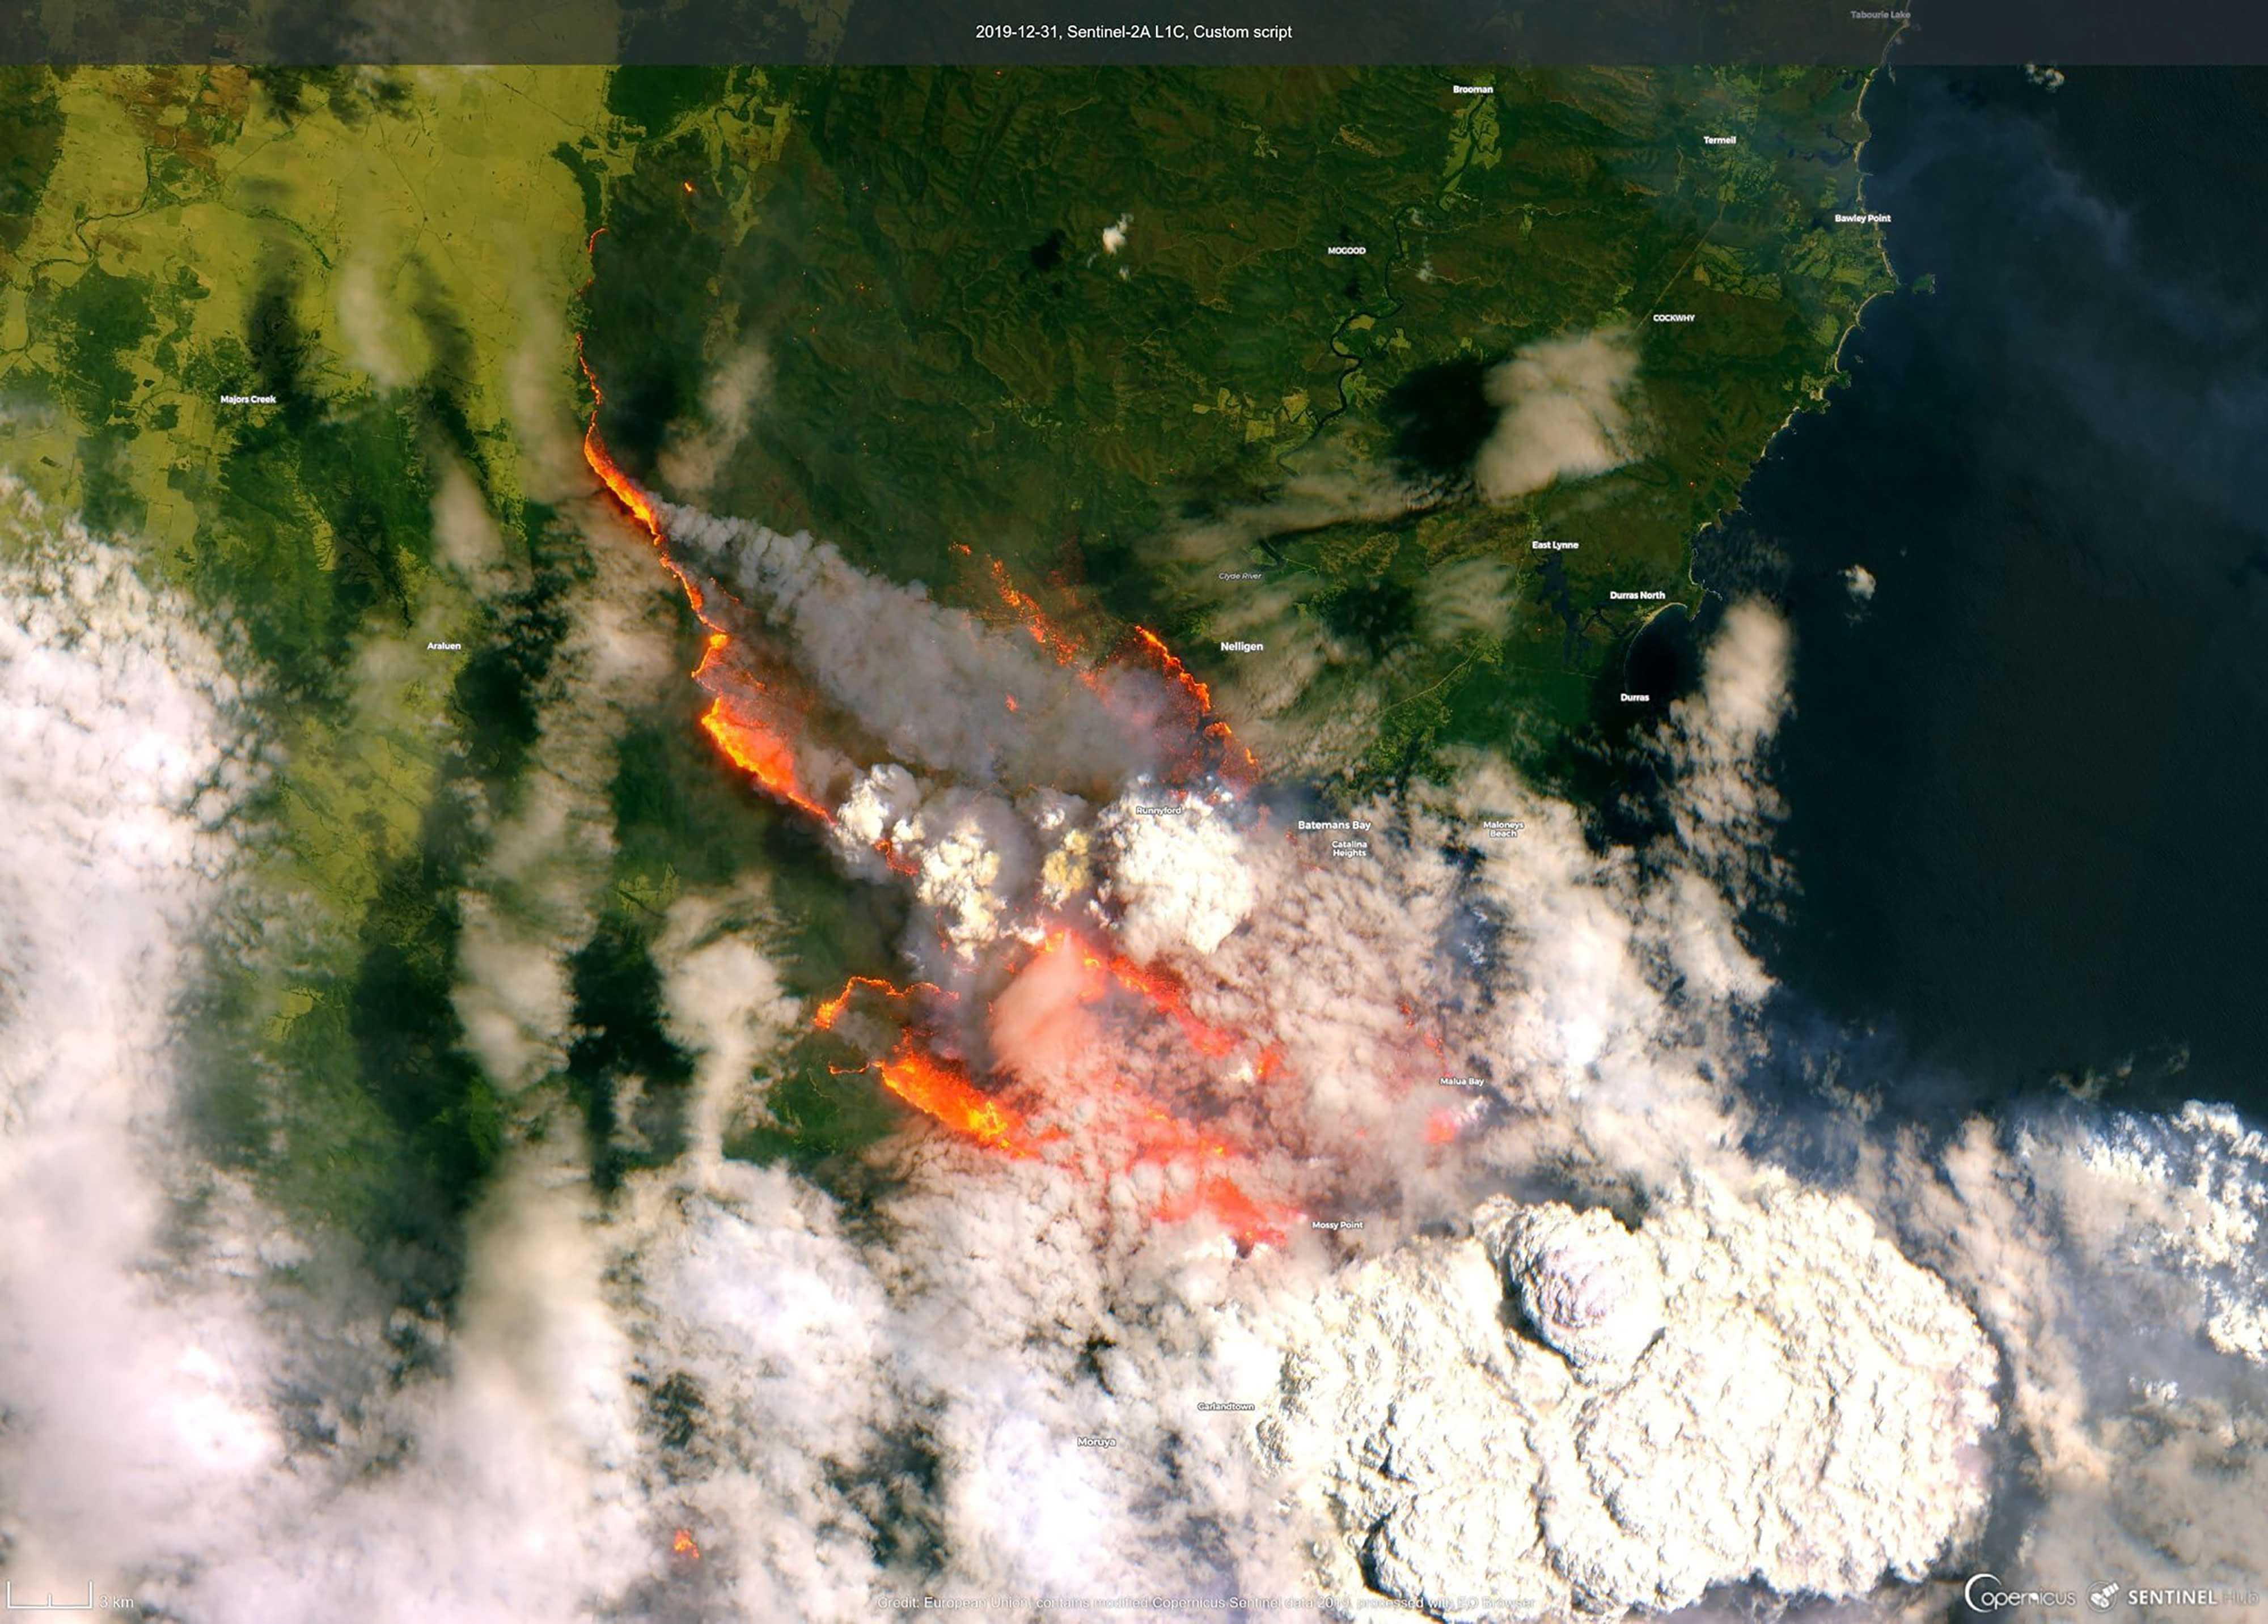 In this satellite image released by Copernicus Sentinel imagery, 2020 twitter page dated Dec. 31, 2019, shows wildfires burning across Australia. (Copernicus Sentinel Imagery via AP)